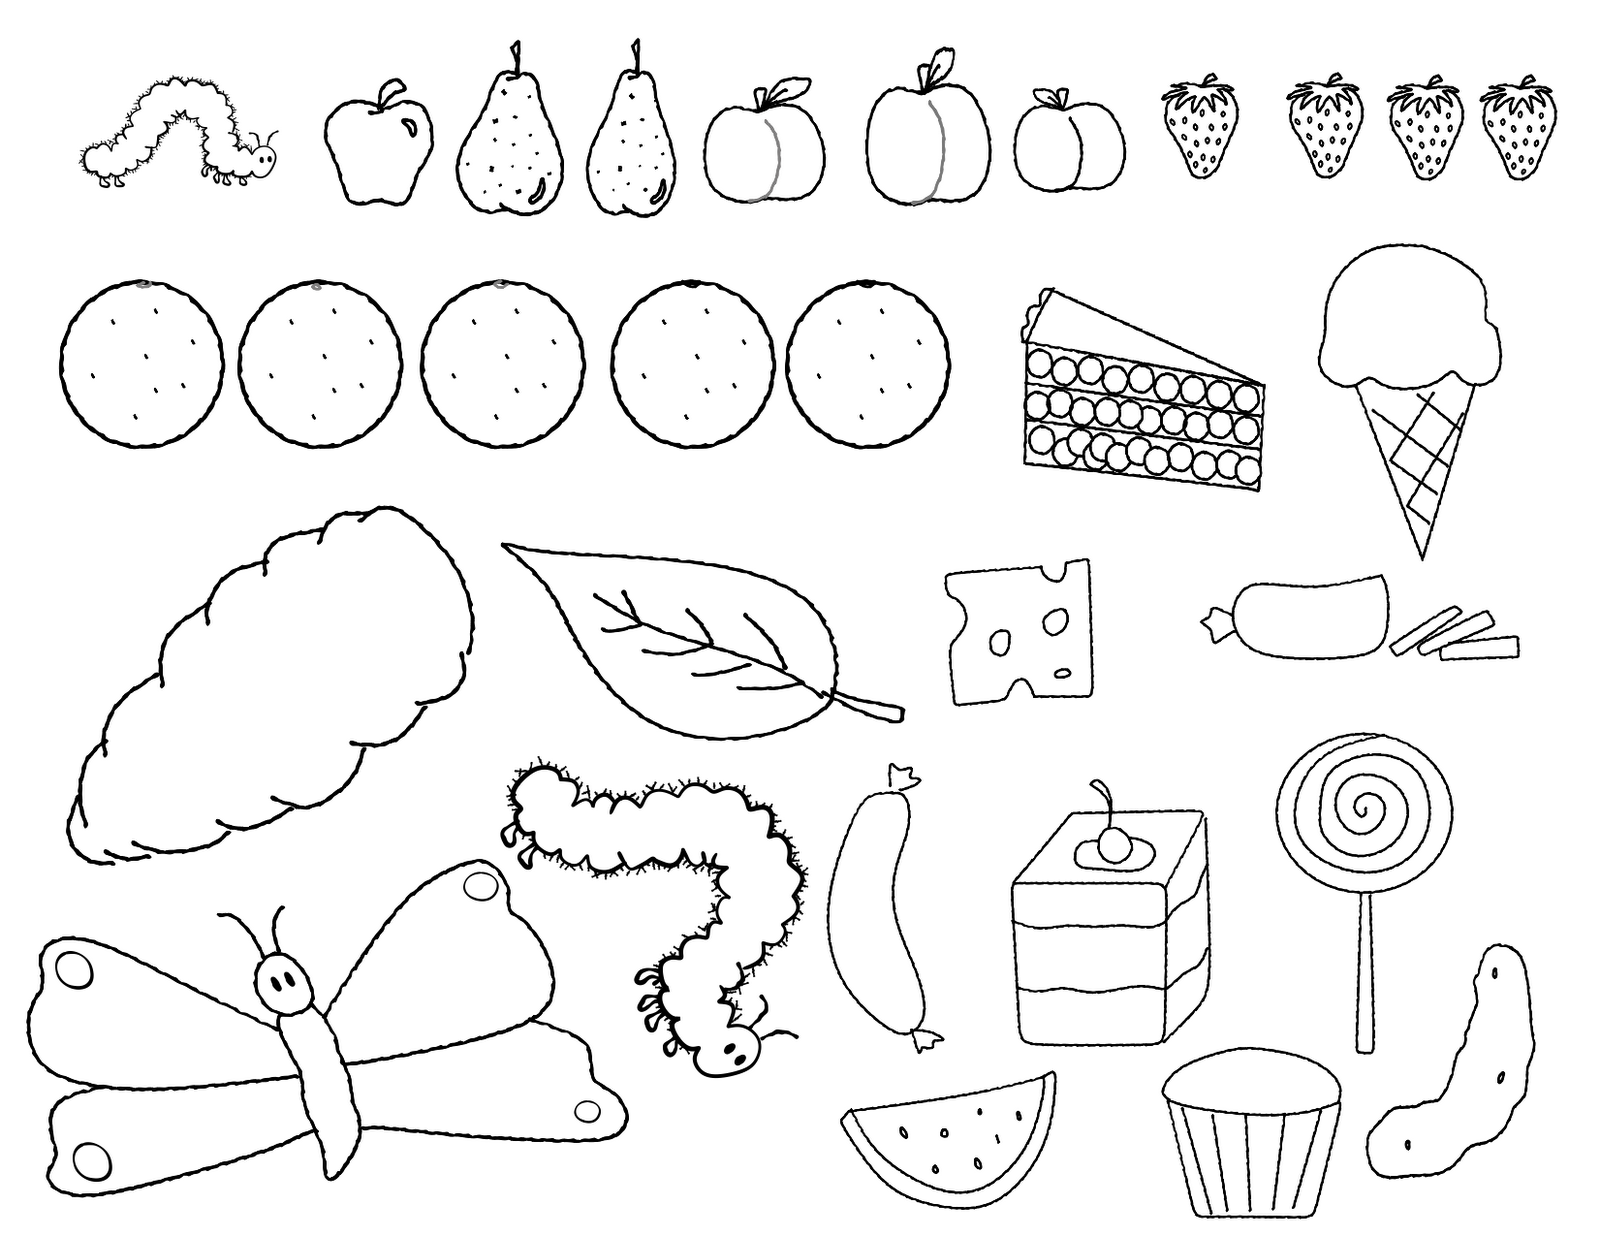 The Very Hungry Caterpillar Activities FREE Coloring Page Of Items In Story